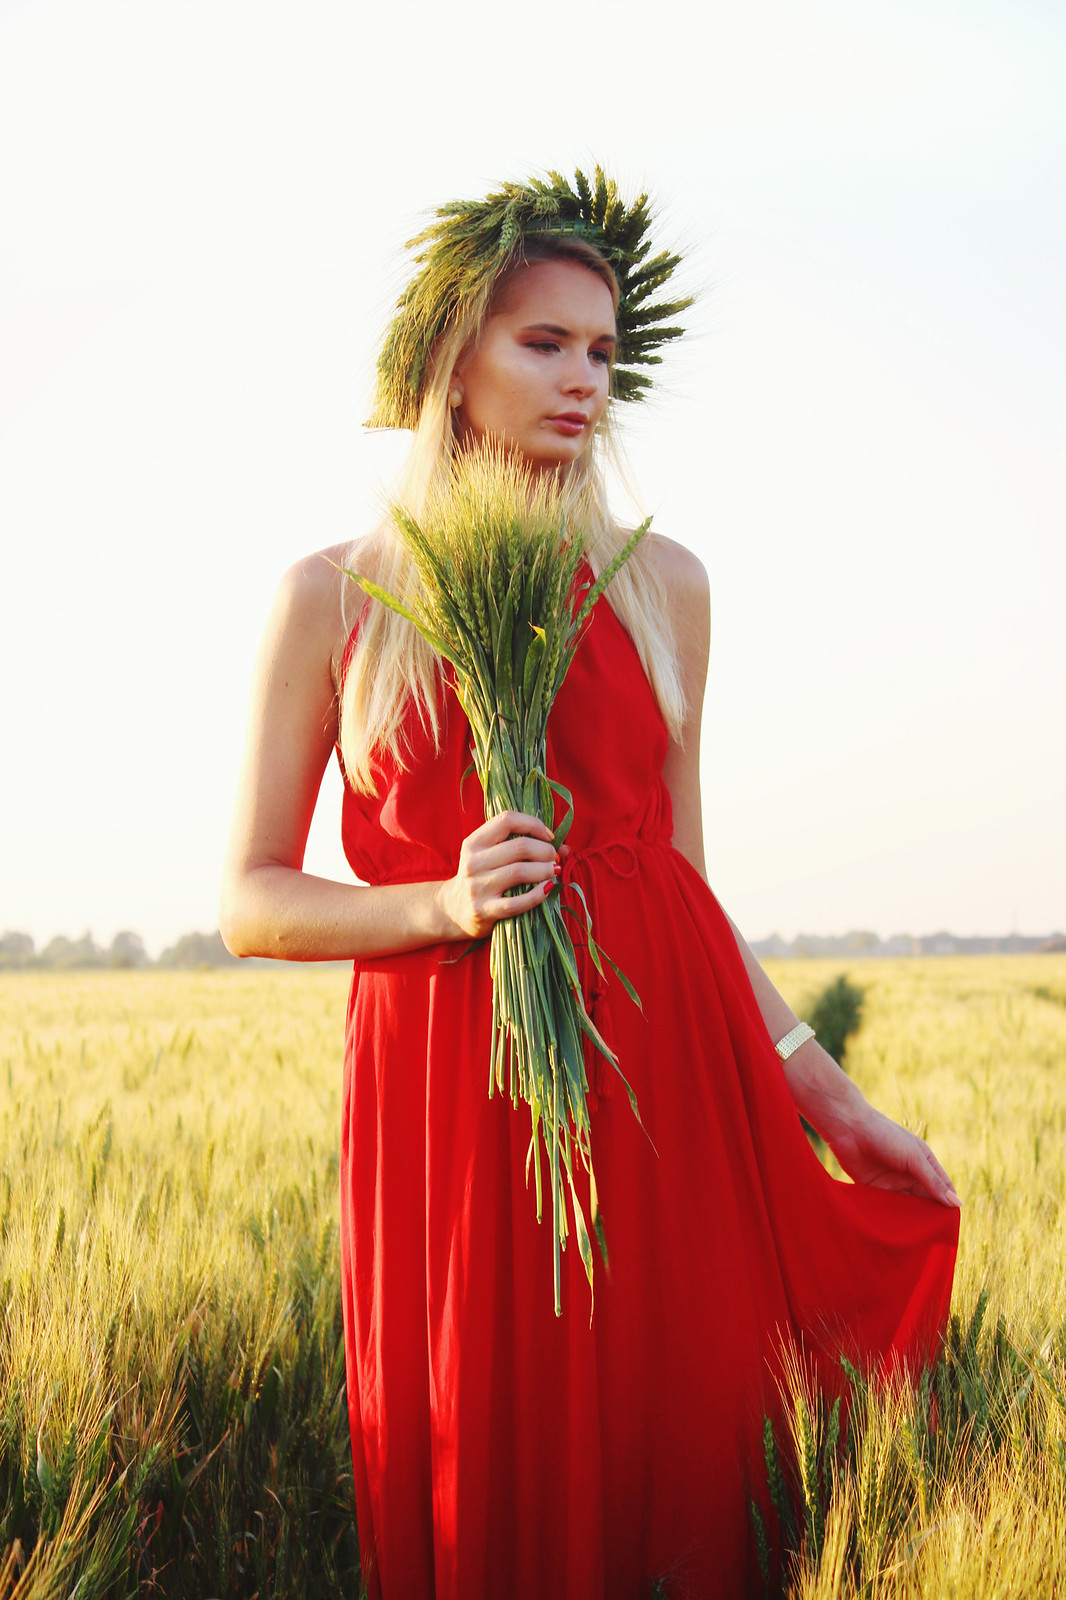 Styling a red maxi dress